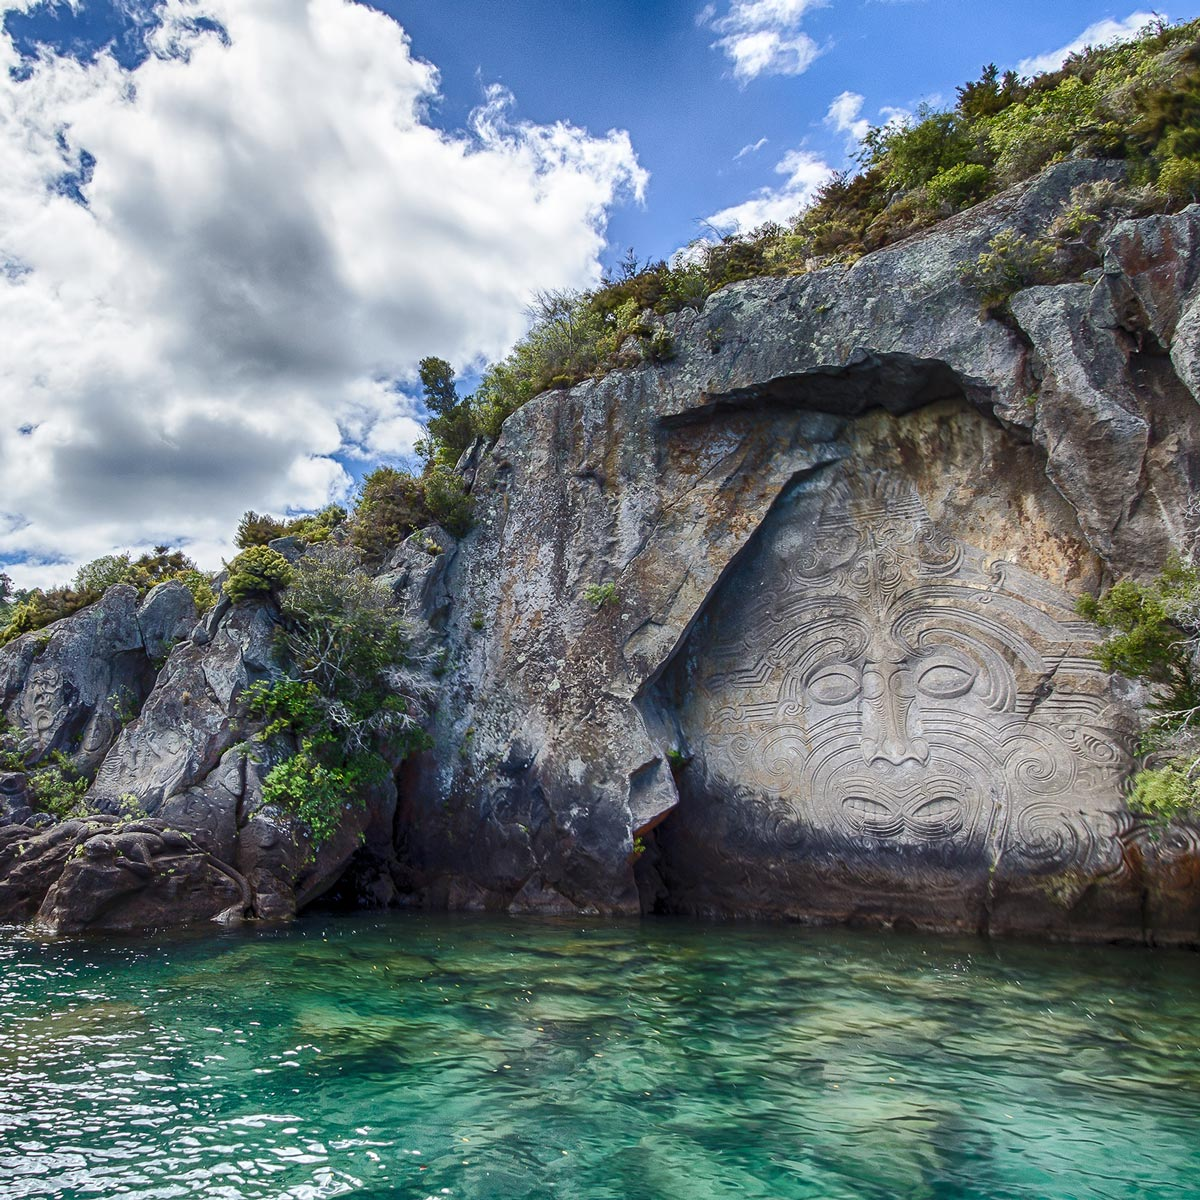 Maori mural at a lakeside in New Zealand